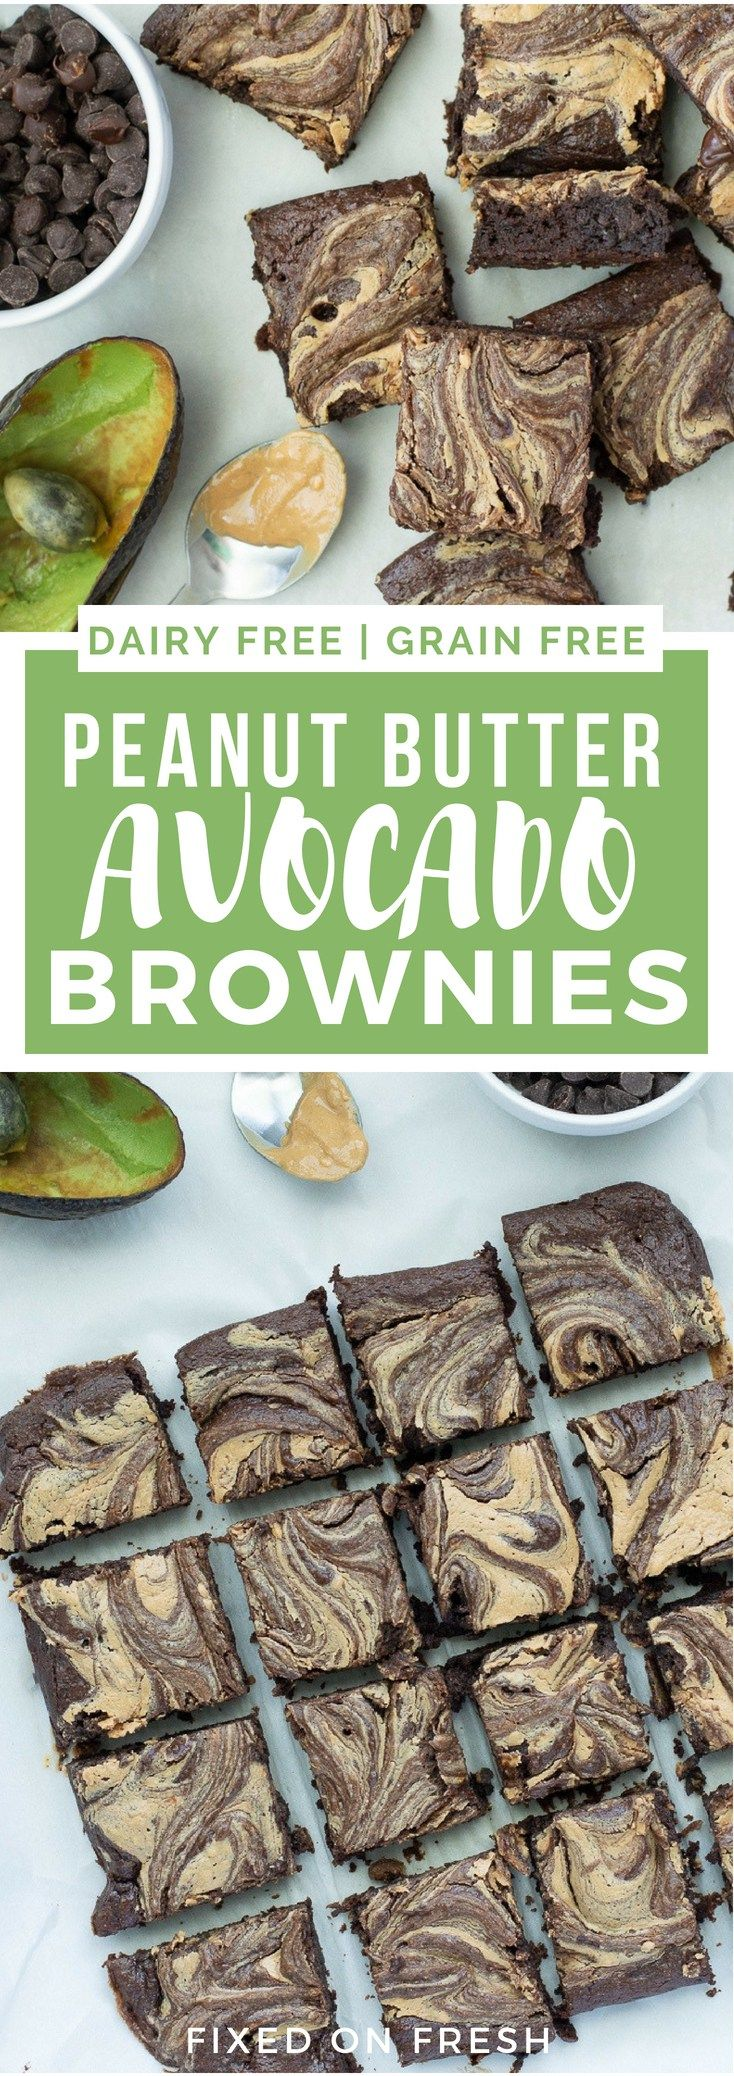 Fudgy Peanut Butter Swirl Avocado Brownies are easy to make and a healthier, low calorie brownie. They have less sugar, use avocado instead of vegetable oil and taste amazing, so kids will love them!